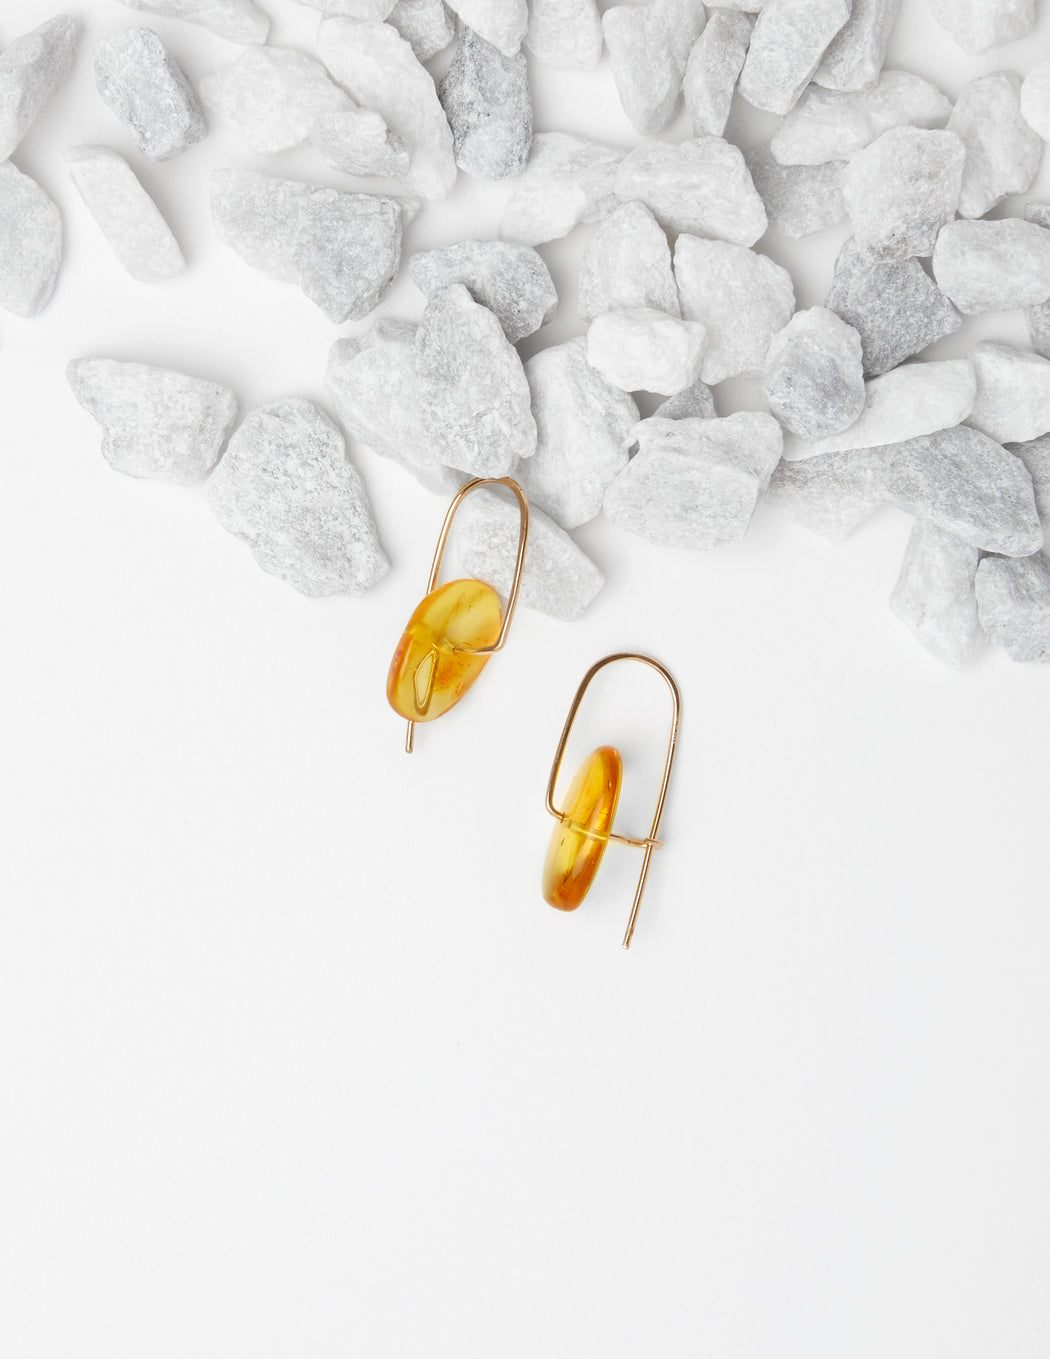 Stone Mobile Earrings (more colors)